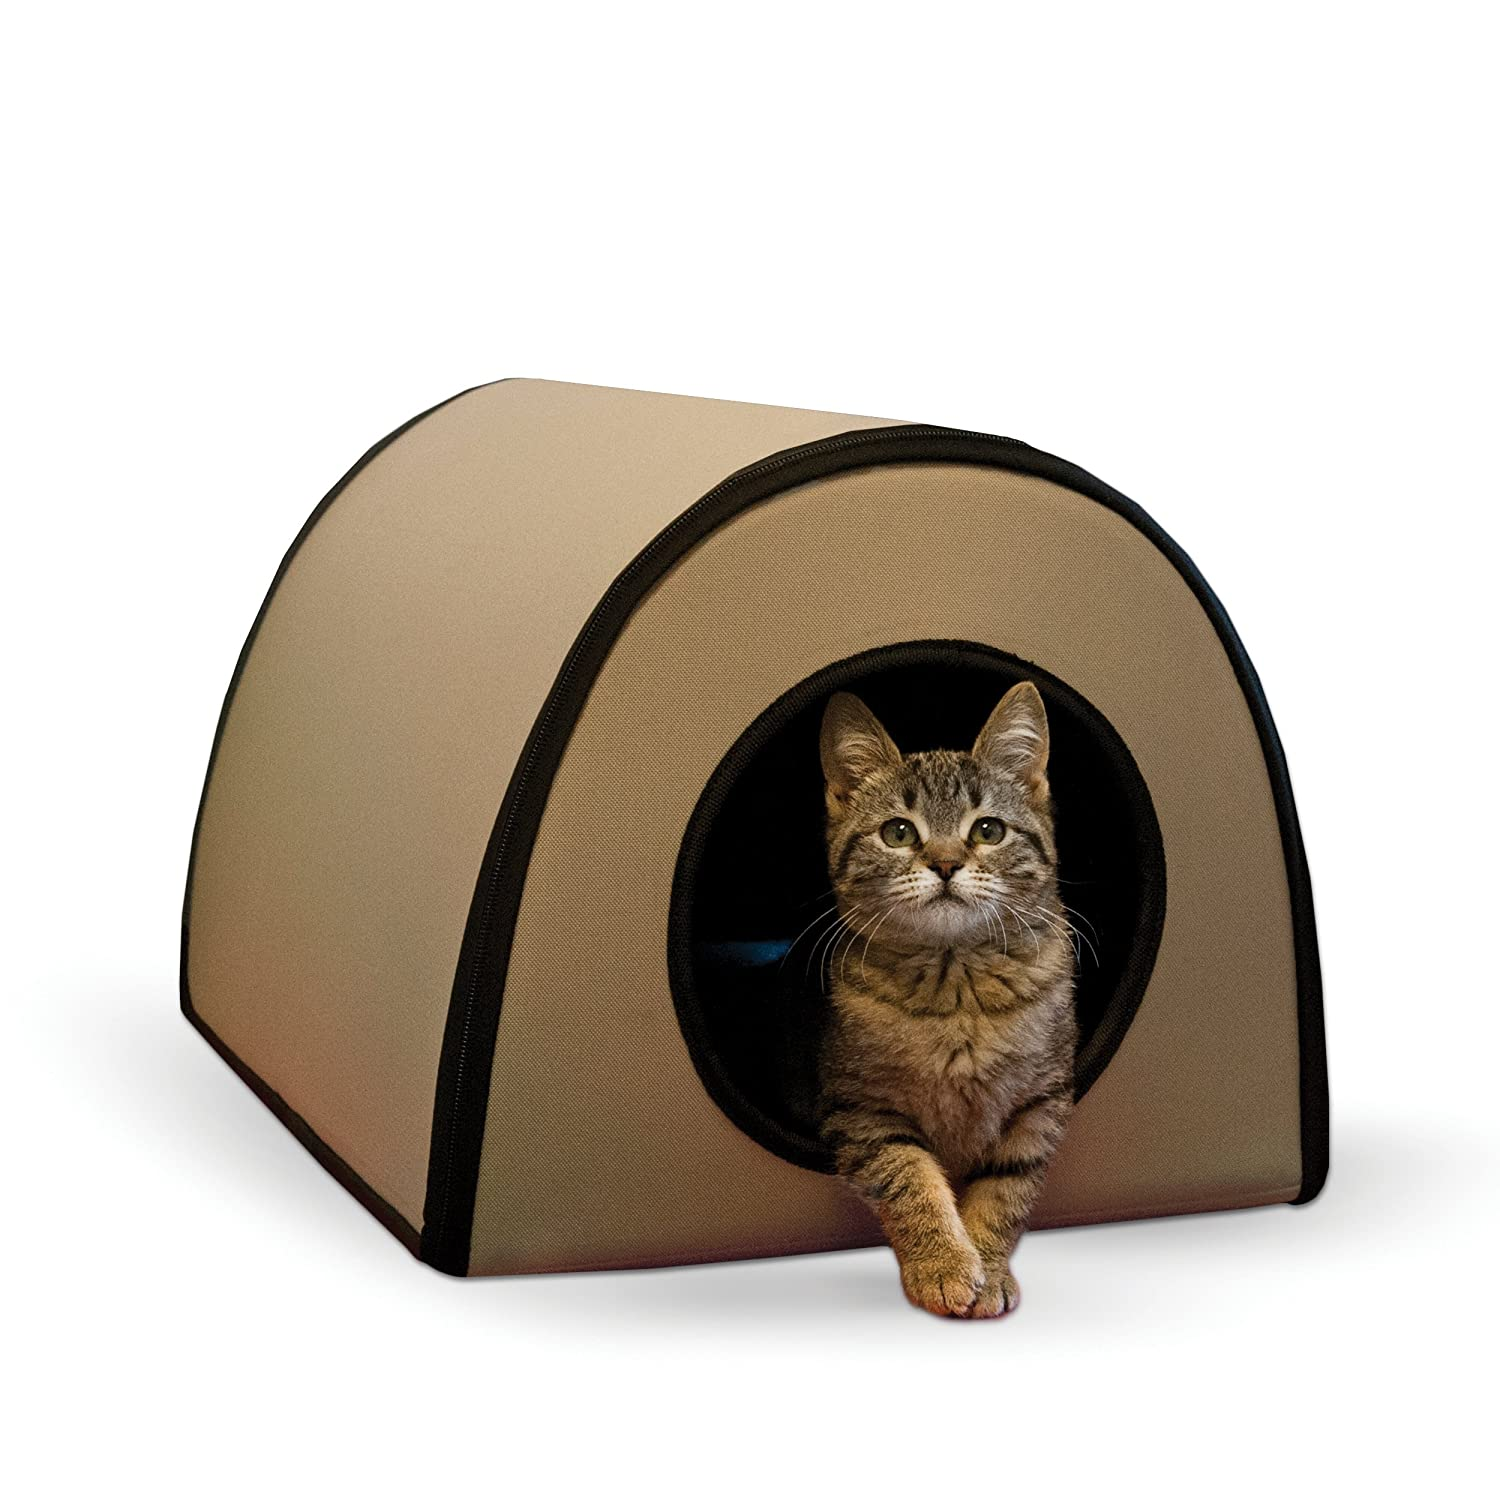 K& H Manufacturing 25-Watt Mod Thermo-Kitty Shelter, 15 by 21.5 by 13-Inch, Tan 5121